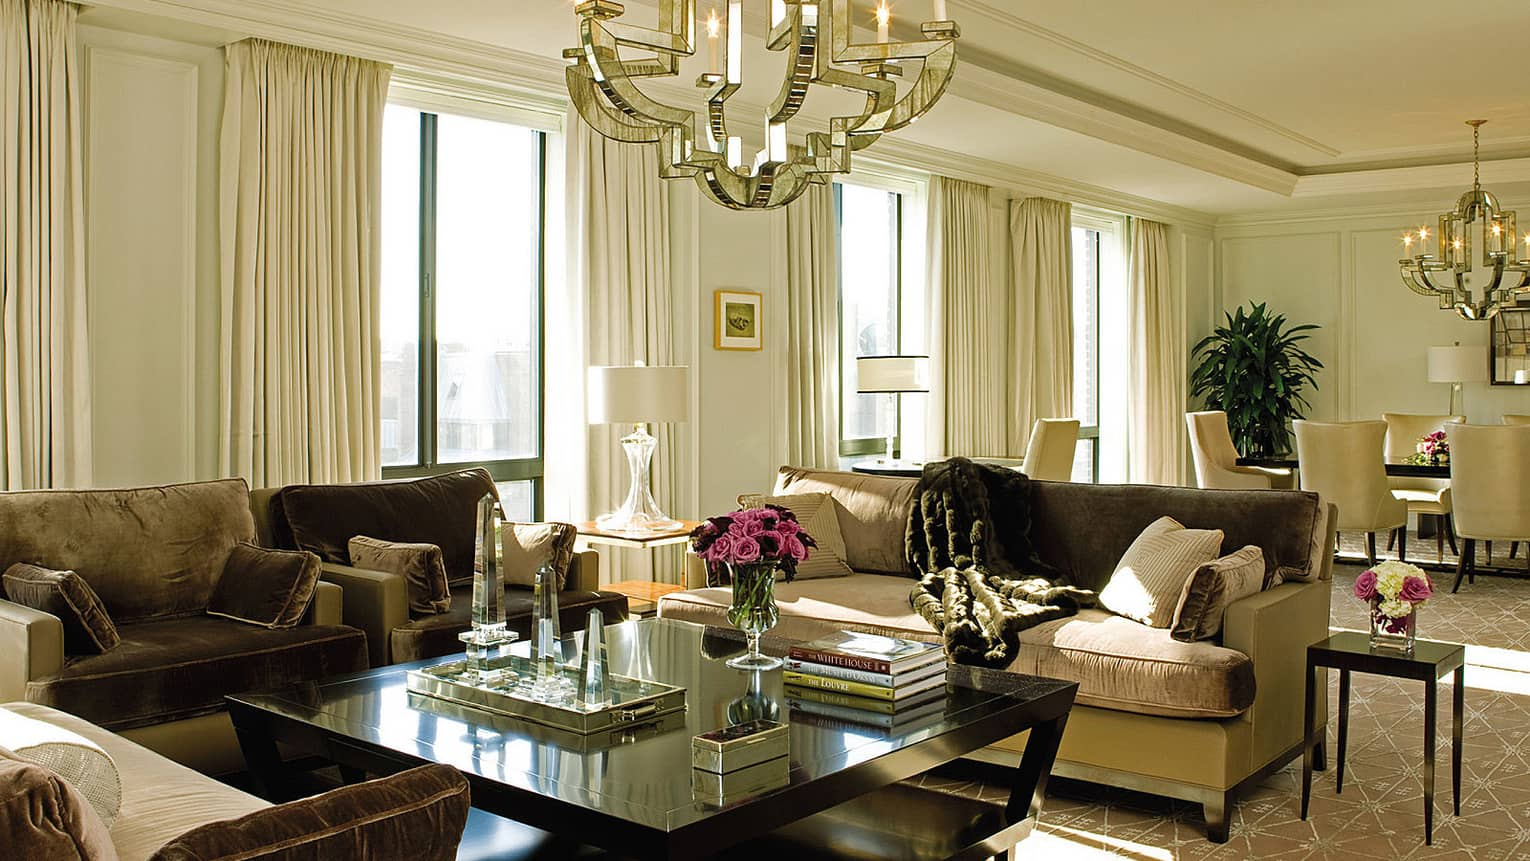 Presidential Suite West Wing large living room with brown, beige velvet sofas, bright picture windows